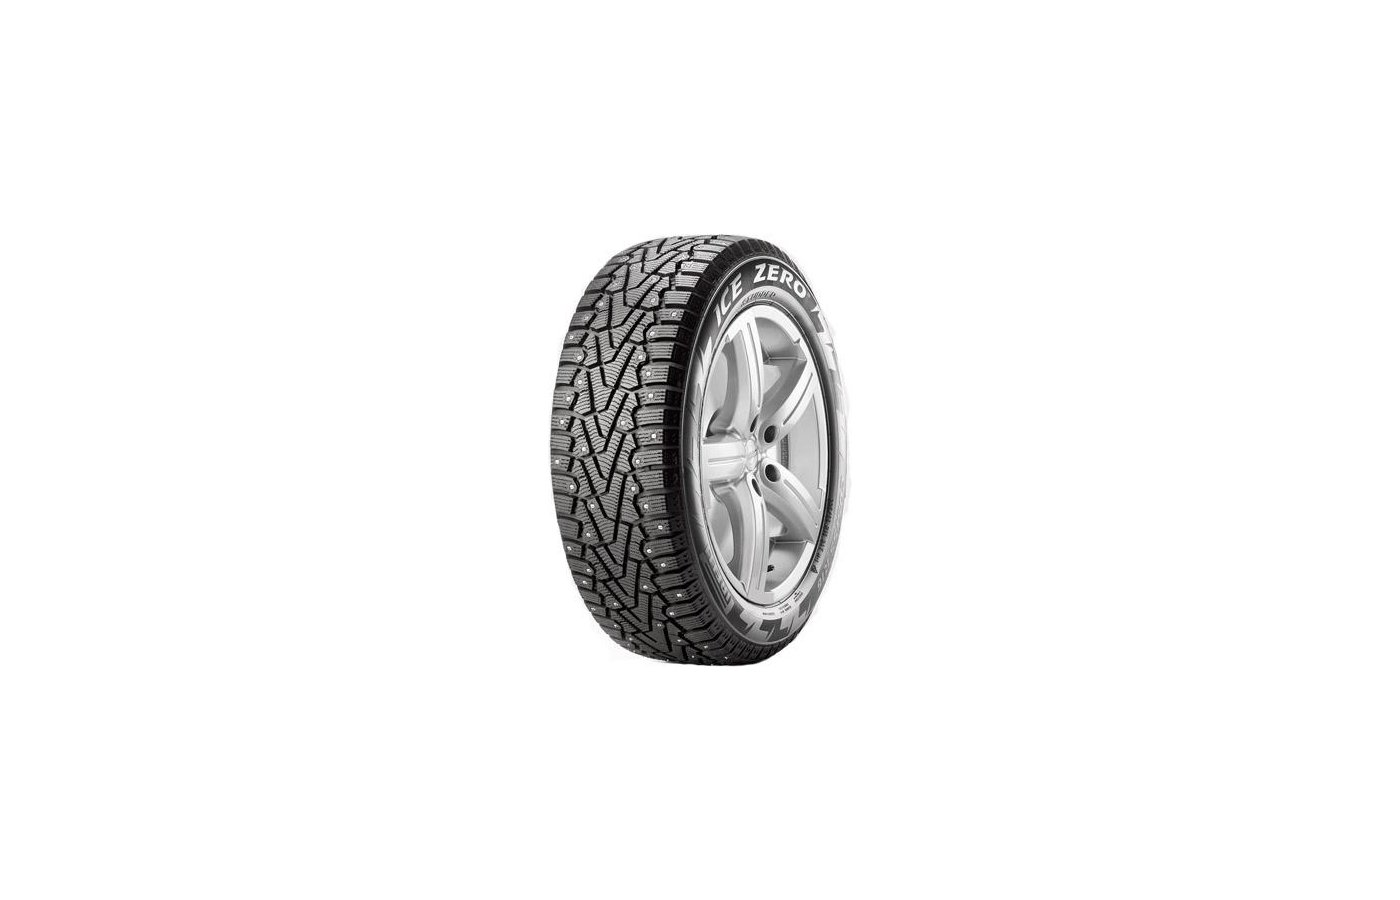 Шина Pirelli Winter Ice Zero 215/50 R17 TL 95T XL шип